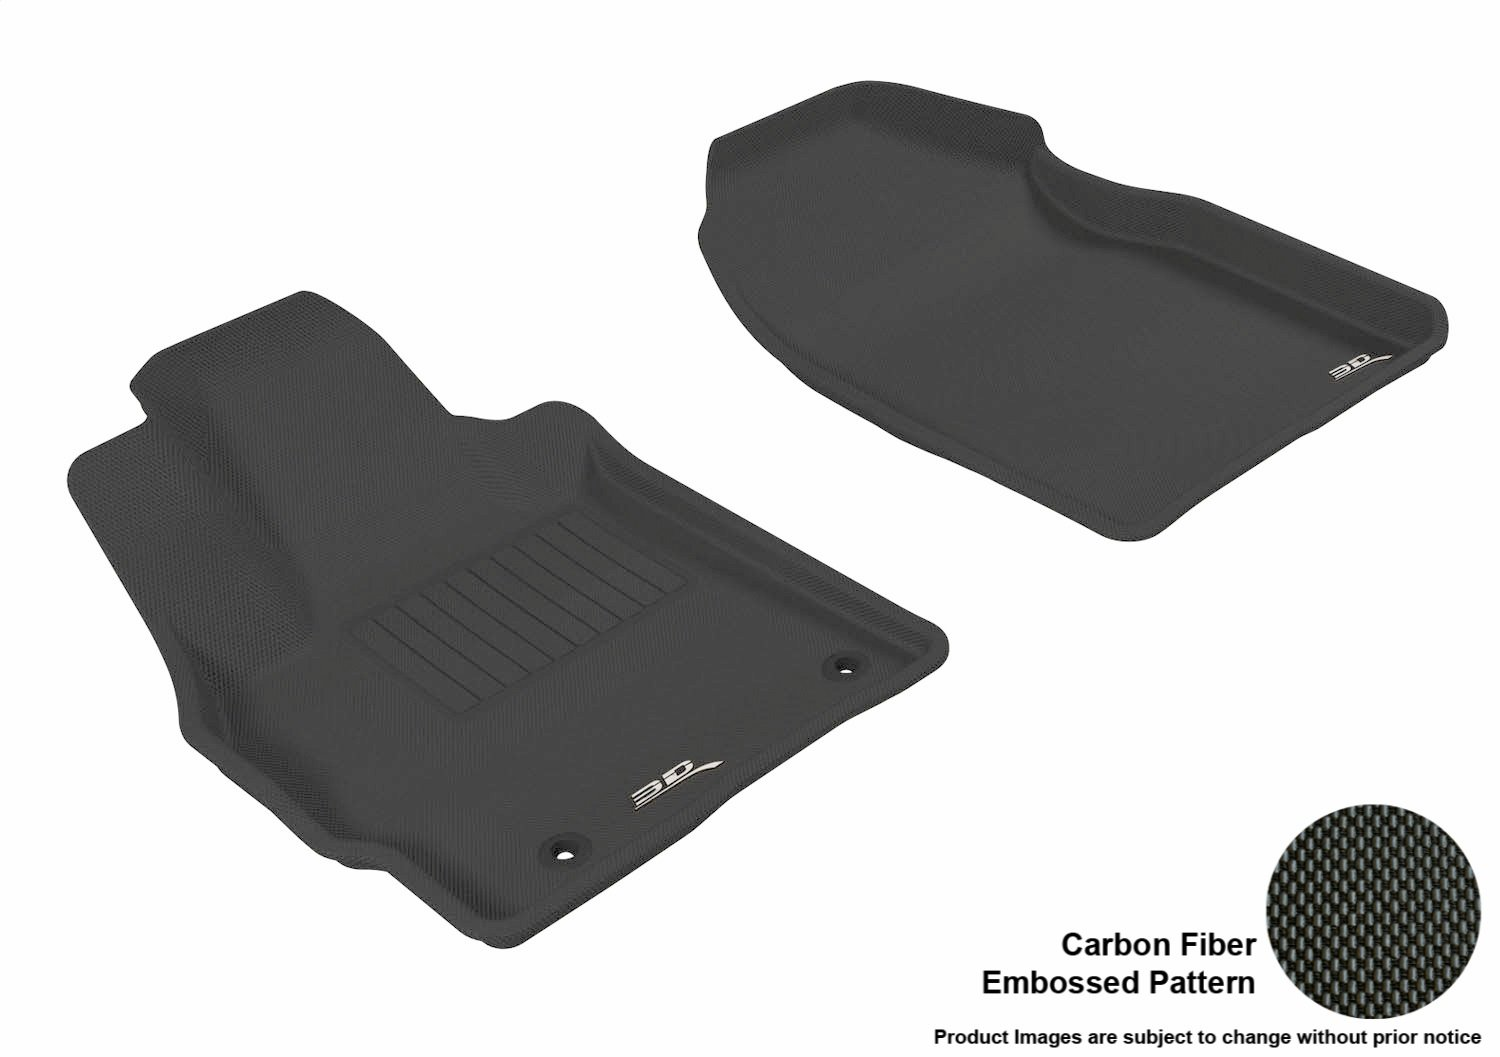 Kagu Rubber Tan 3D MAXpider Front Row Custom Fit All-Weather Floor Mat for Select Mazda CX-7 Models